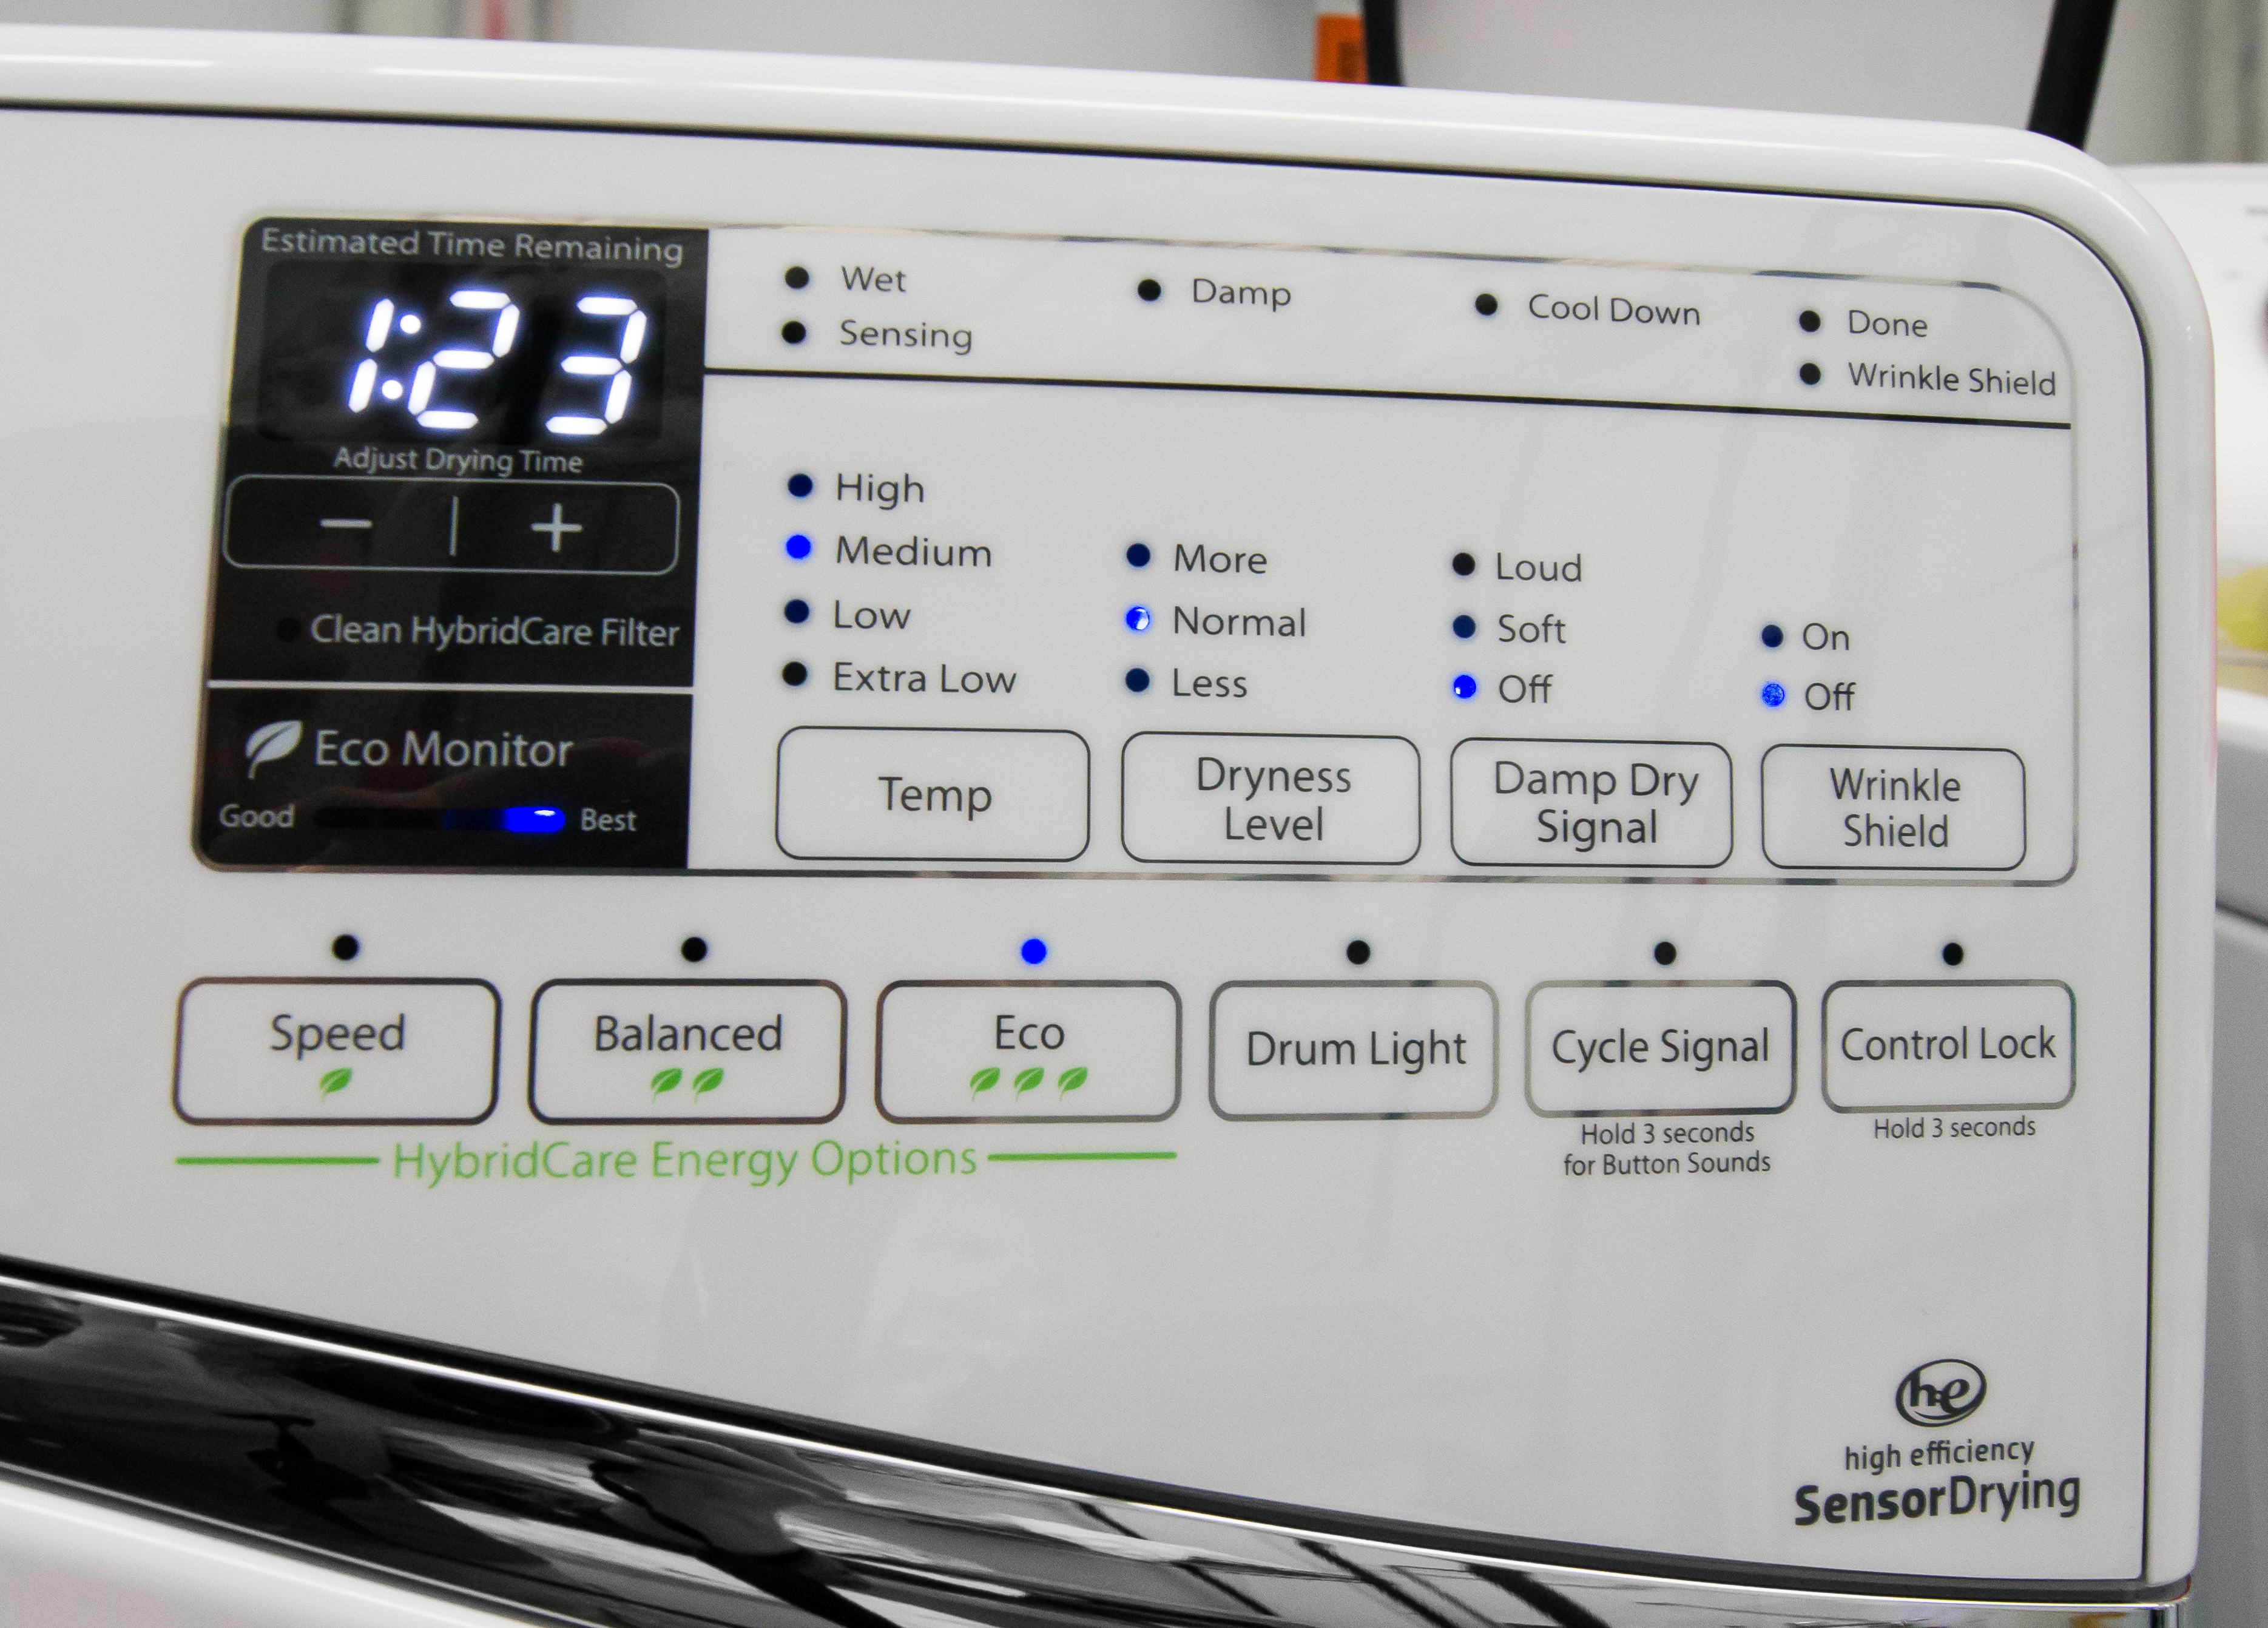 The Whirlpool Duet WED99HEDW's controls are easy to use, but the customizable options and extra features are actually a bit slim for a dryer this pricey.